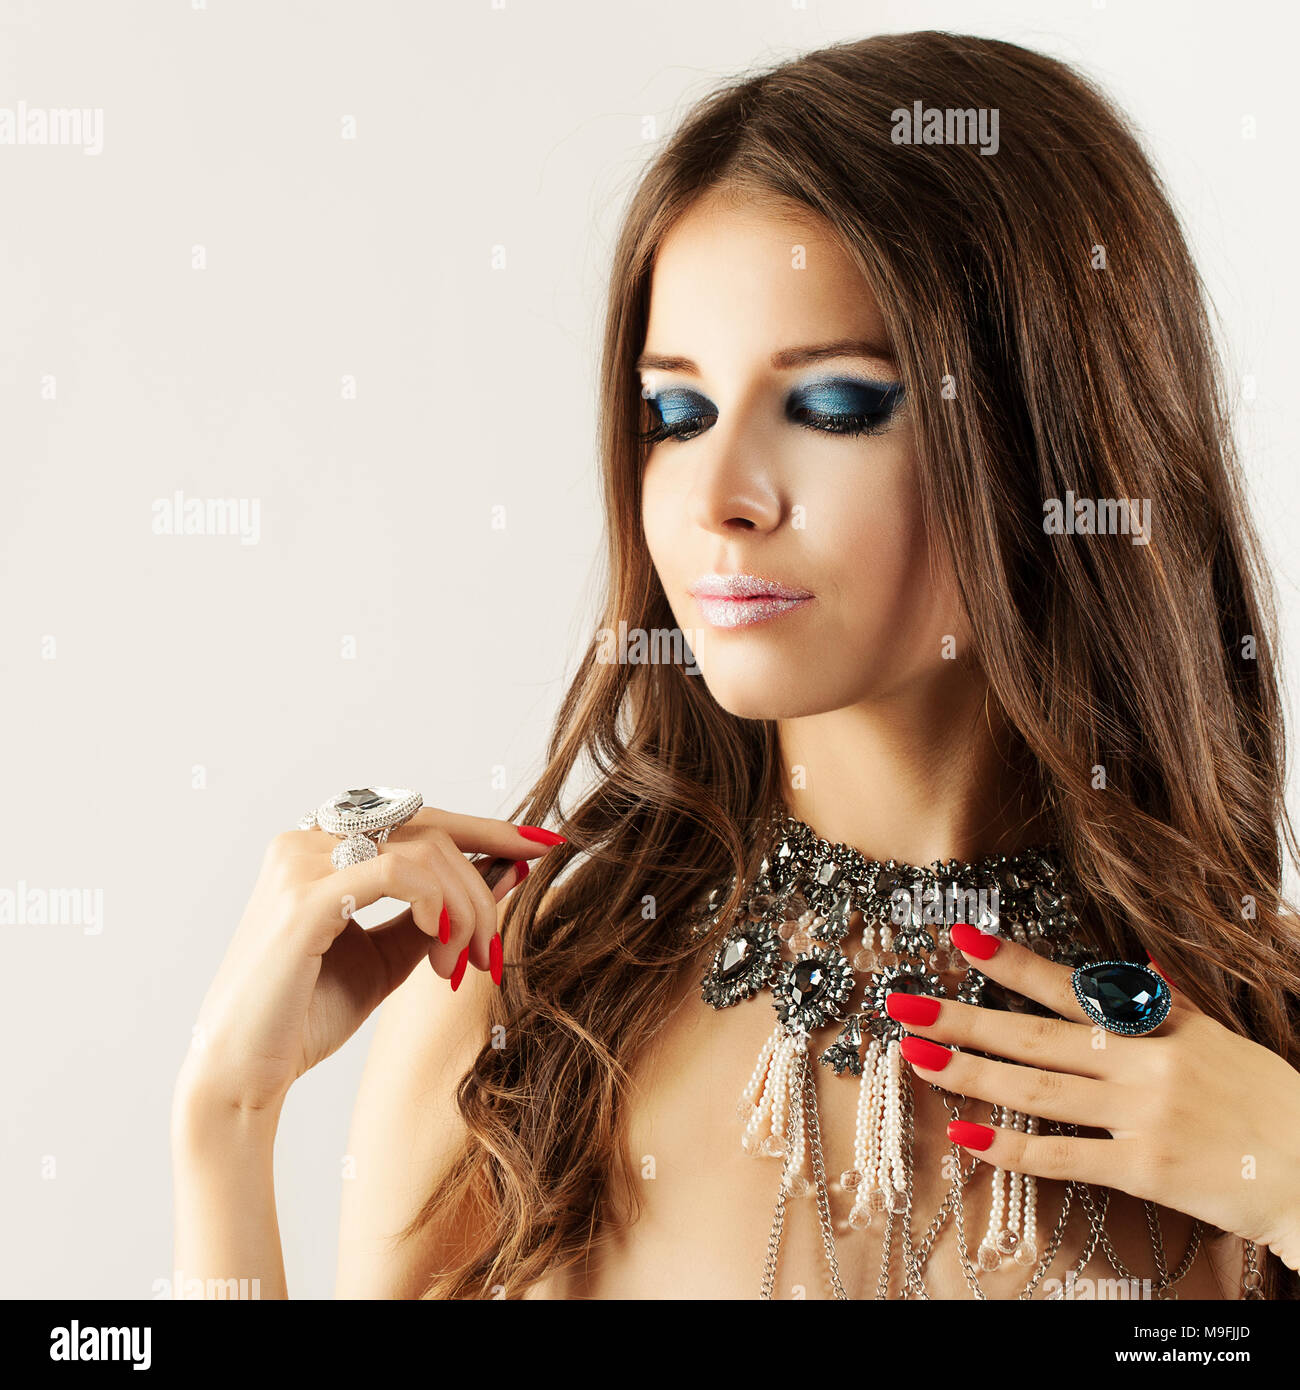 Fashion Girl With Makeup Manicure Nails And Jewelry Woman With Curly Hair And Bright Makeup